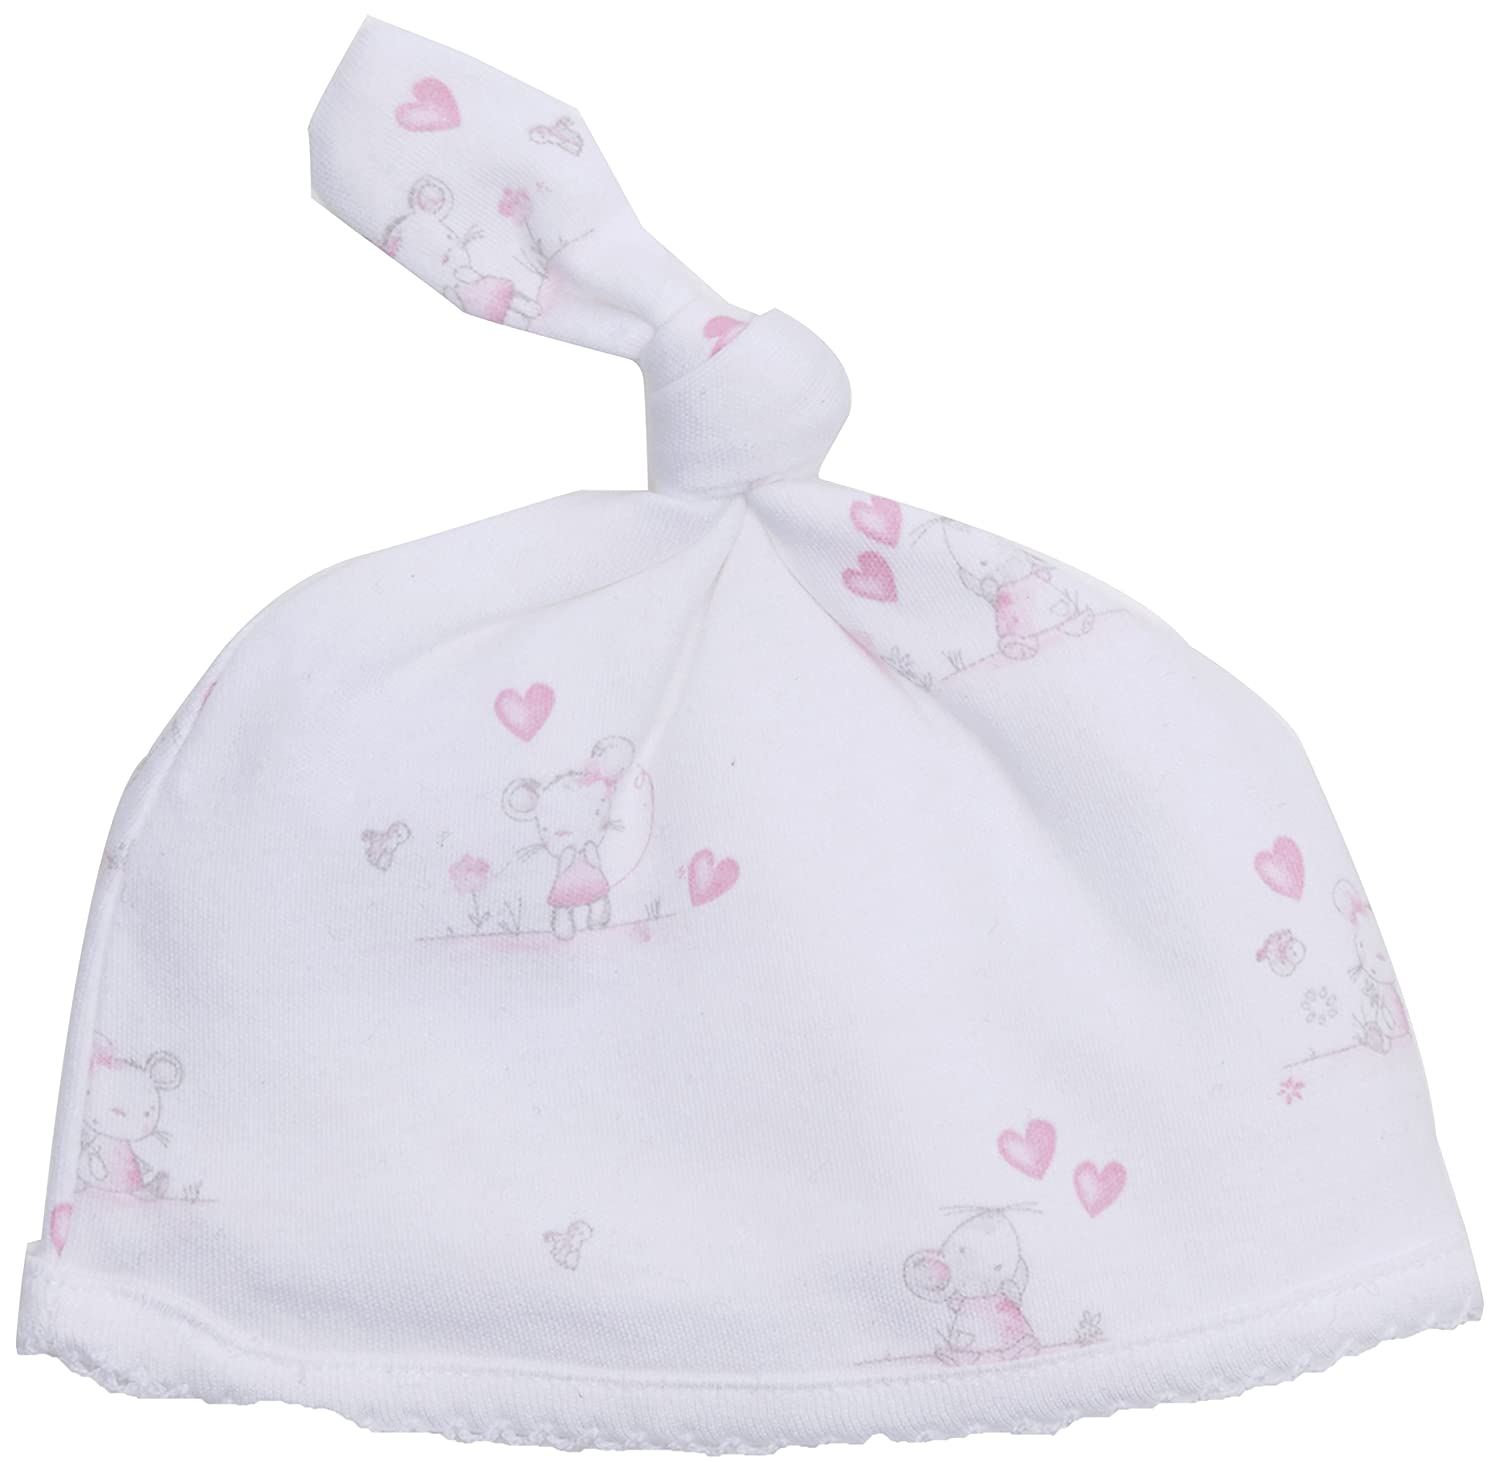 Little Mouse and Pink Hats - 2 Pack Mothercare LD398